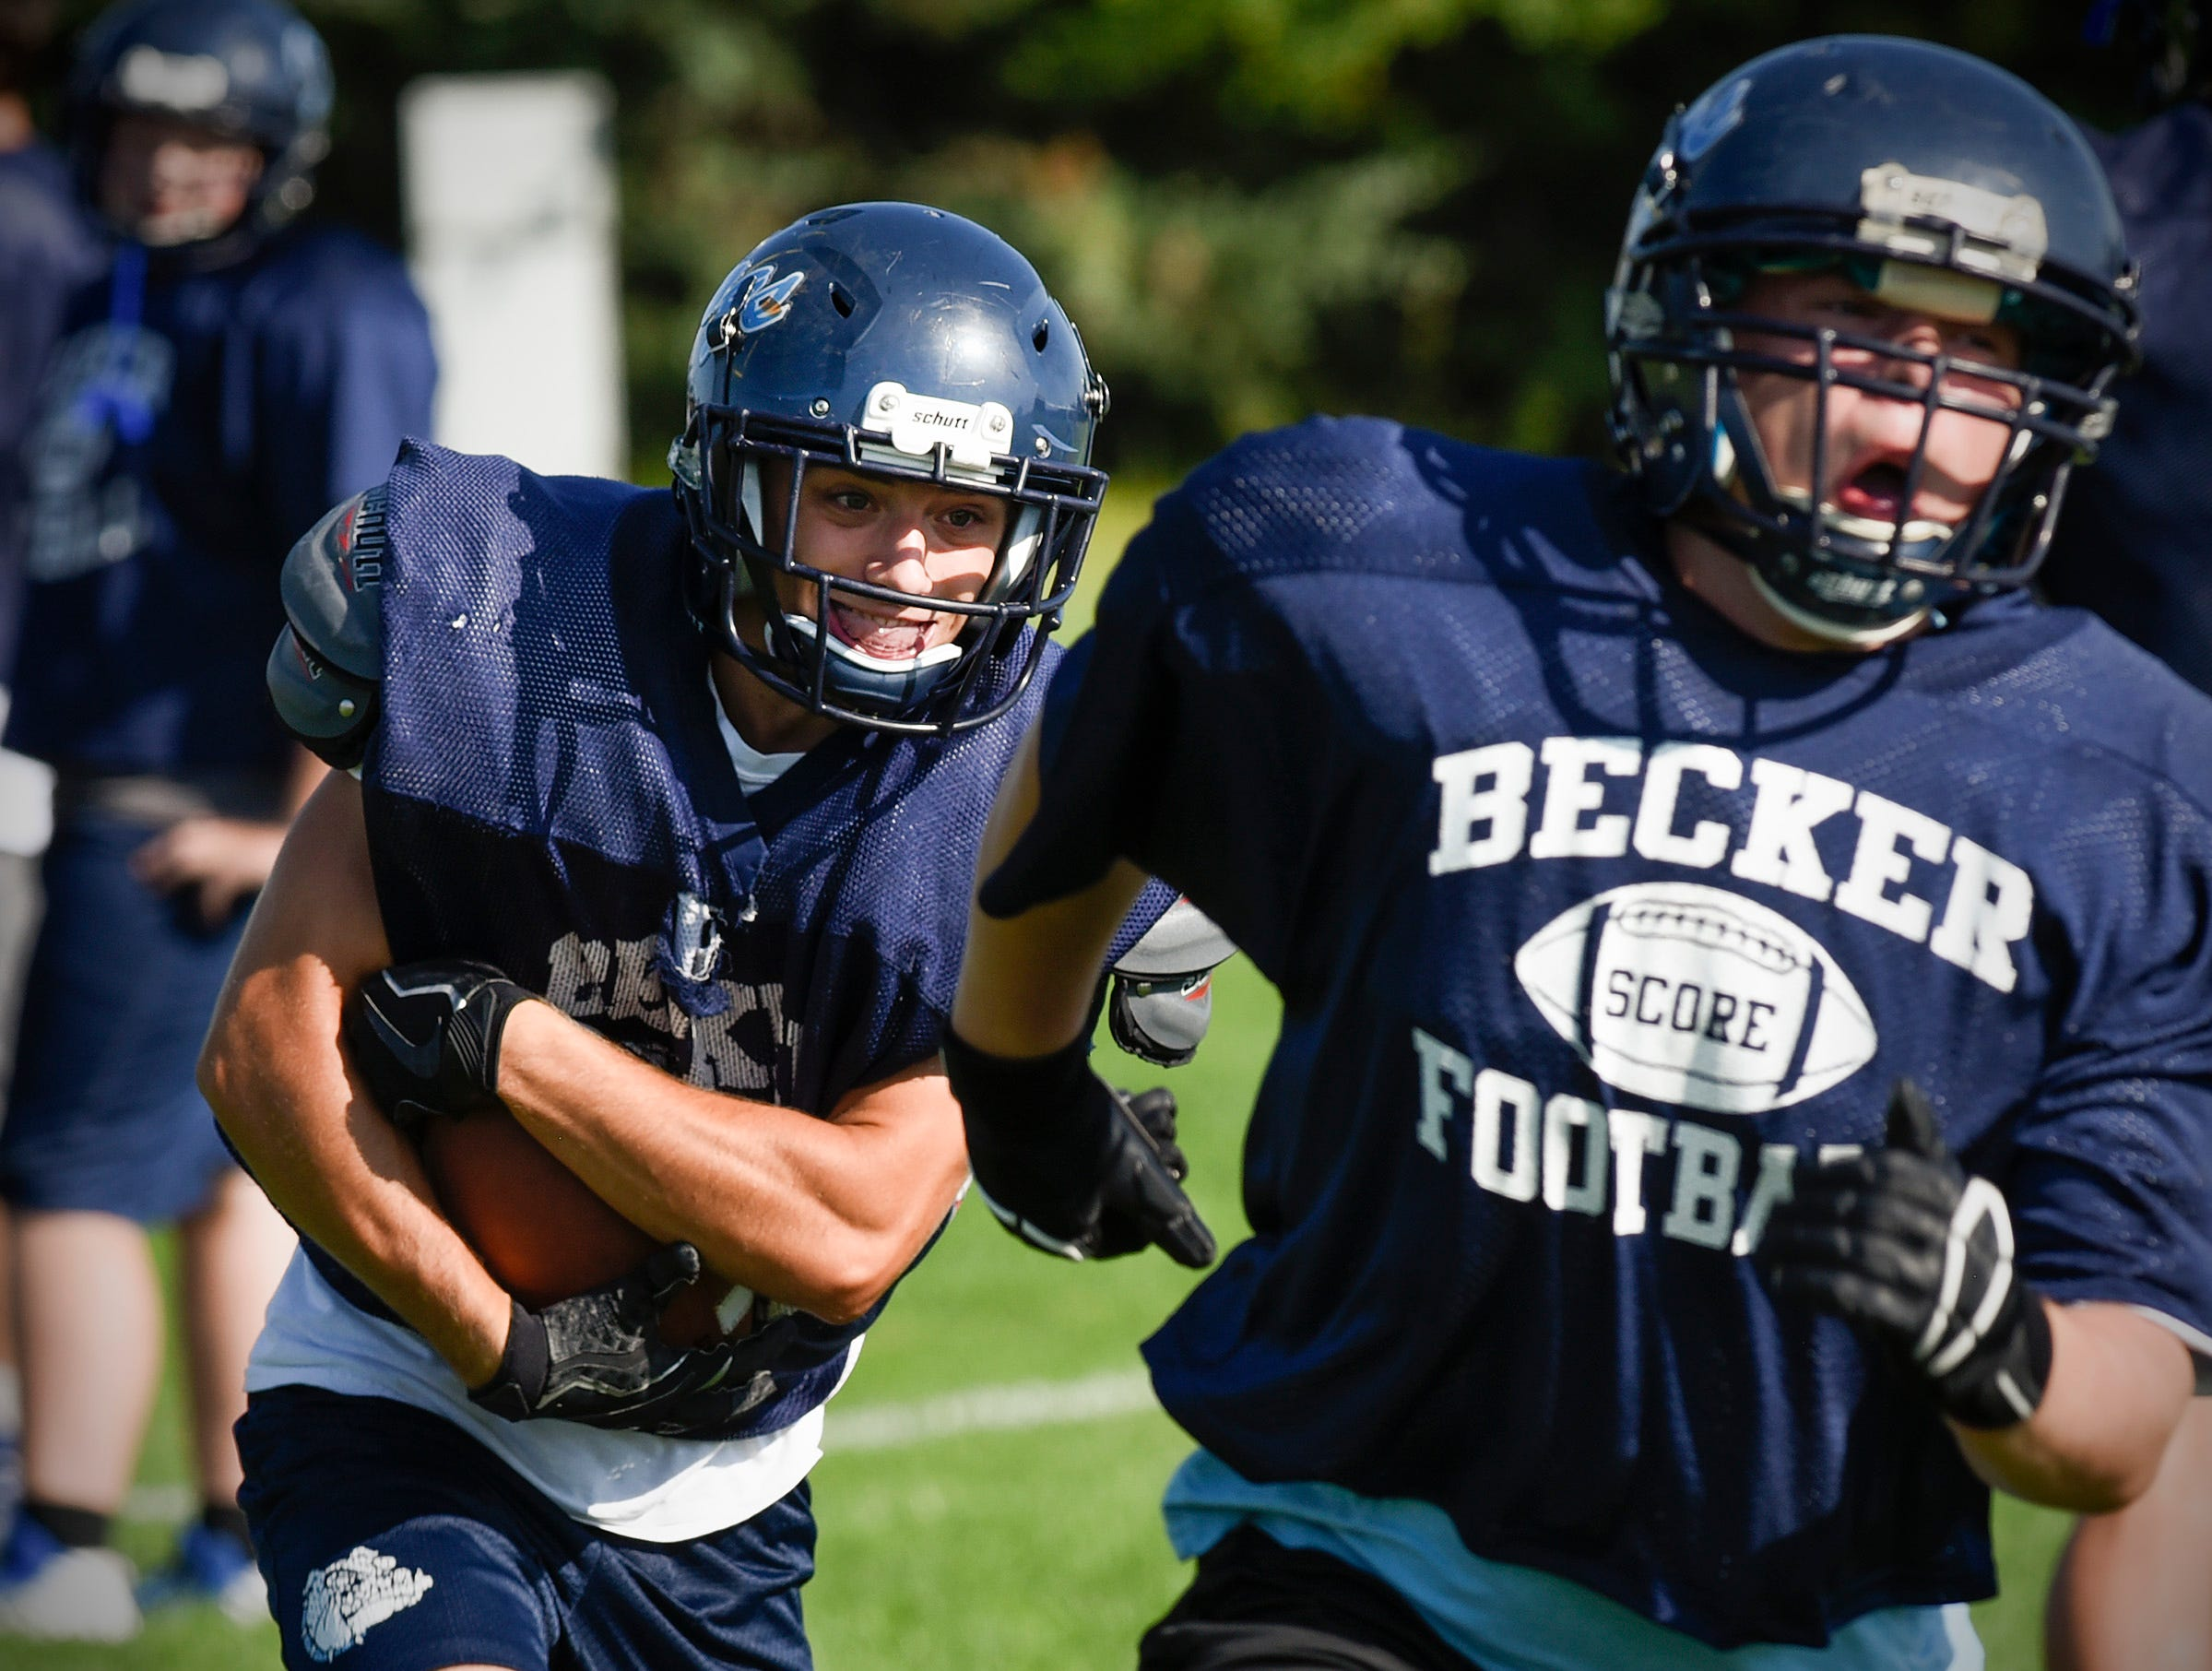 Becker back Kevin Andres finds room to run during practice Wednesday, Aug. 22, at the Becker High School.